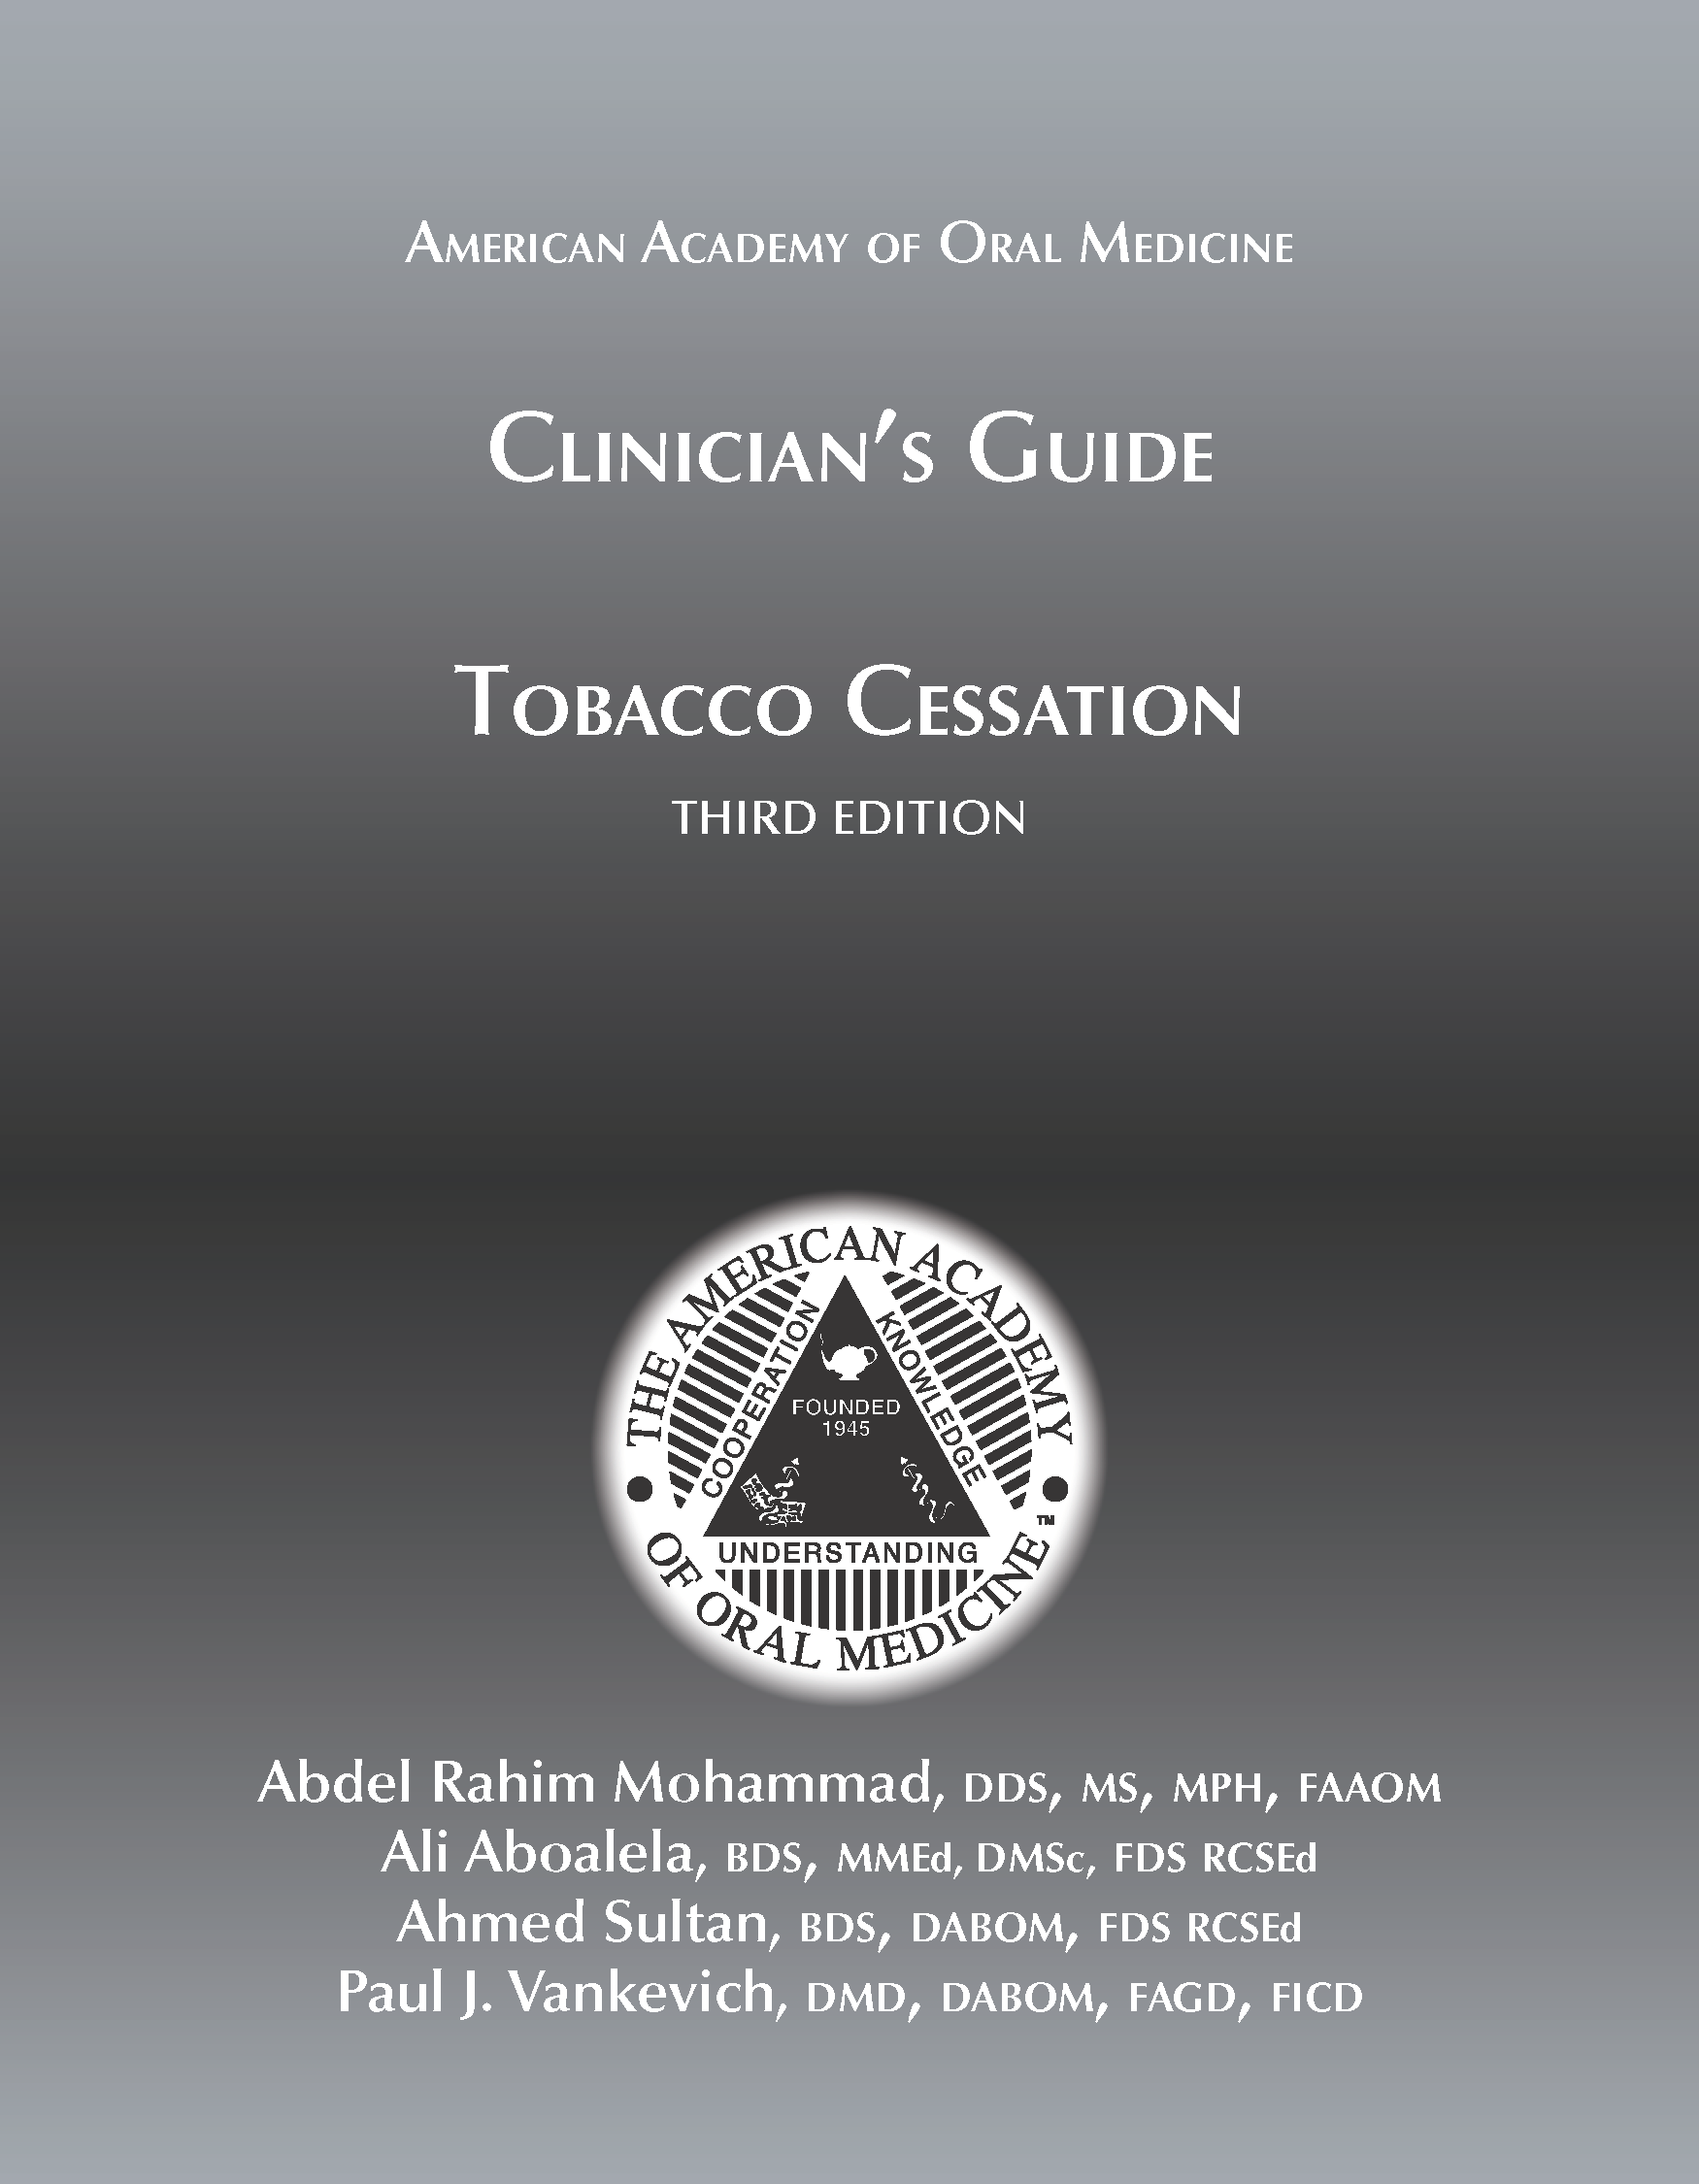 Clinicians guides 6 american academy of oral medicine clinicians guide to tobacco cessation third edition isbn print 9781936176496 fandeluxe Gallery